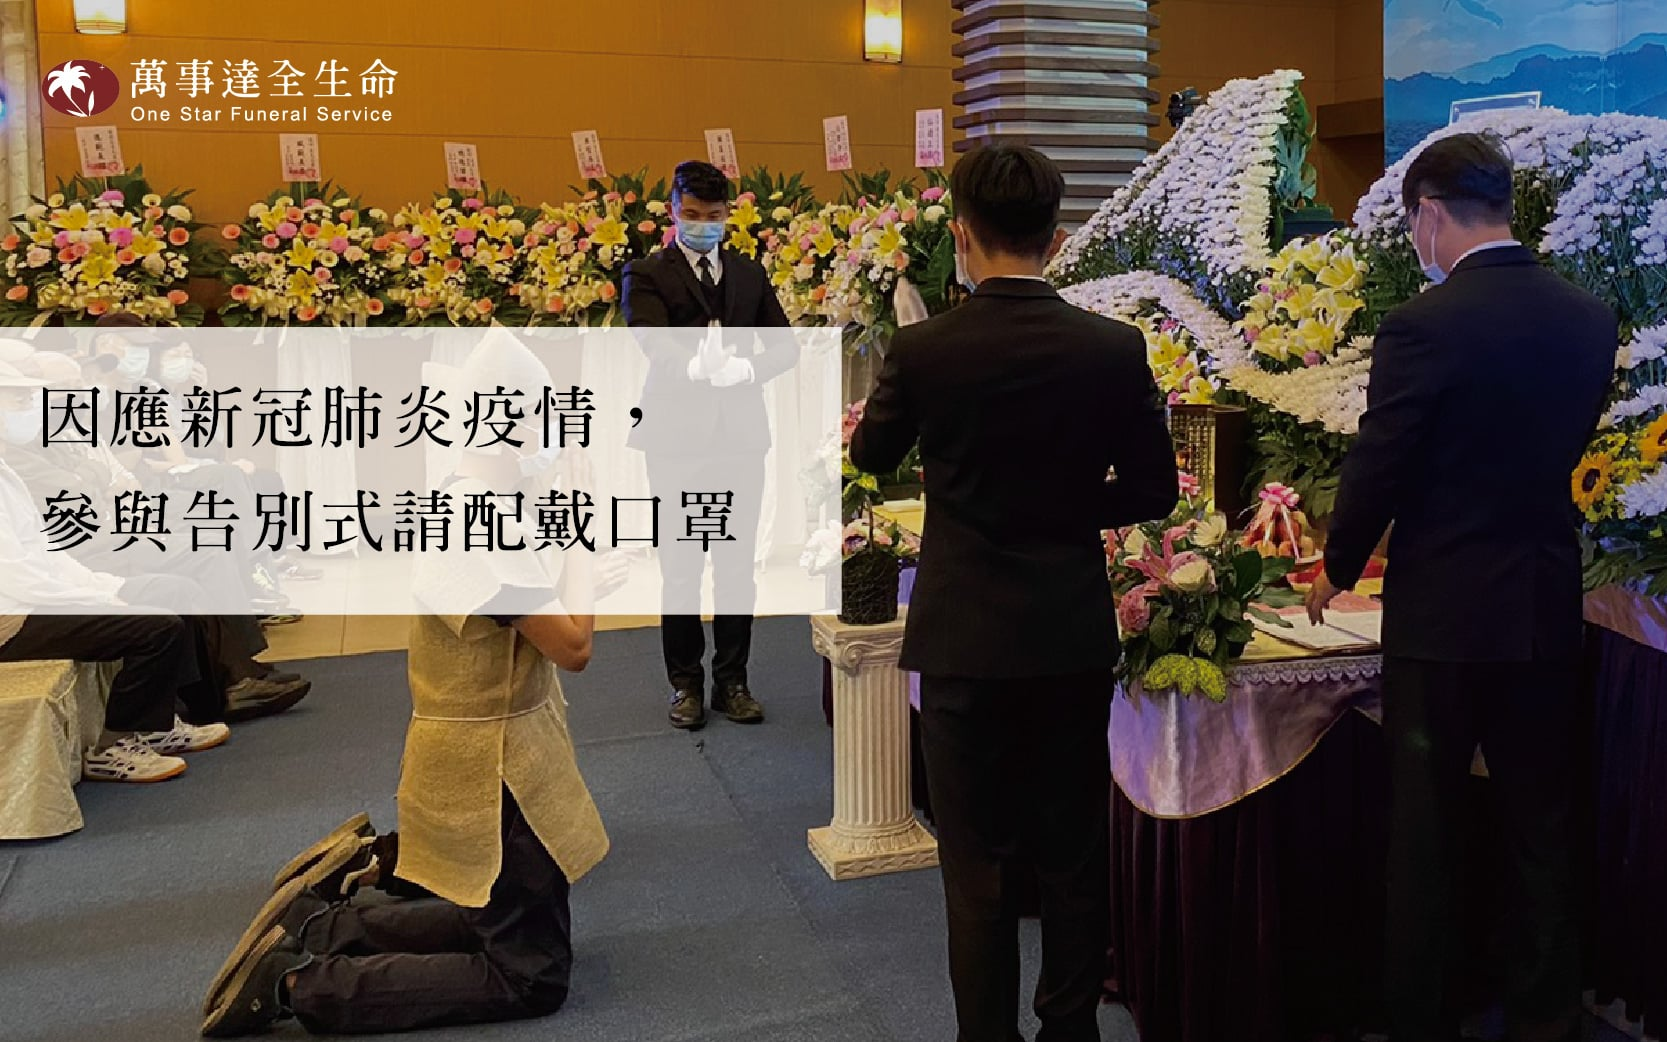 Read more about the article 因應新冠肺炎疫情,參與告別式請配戴口罩